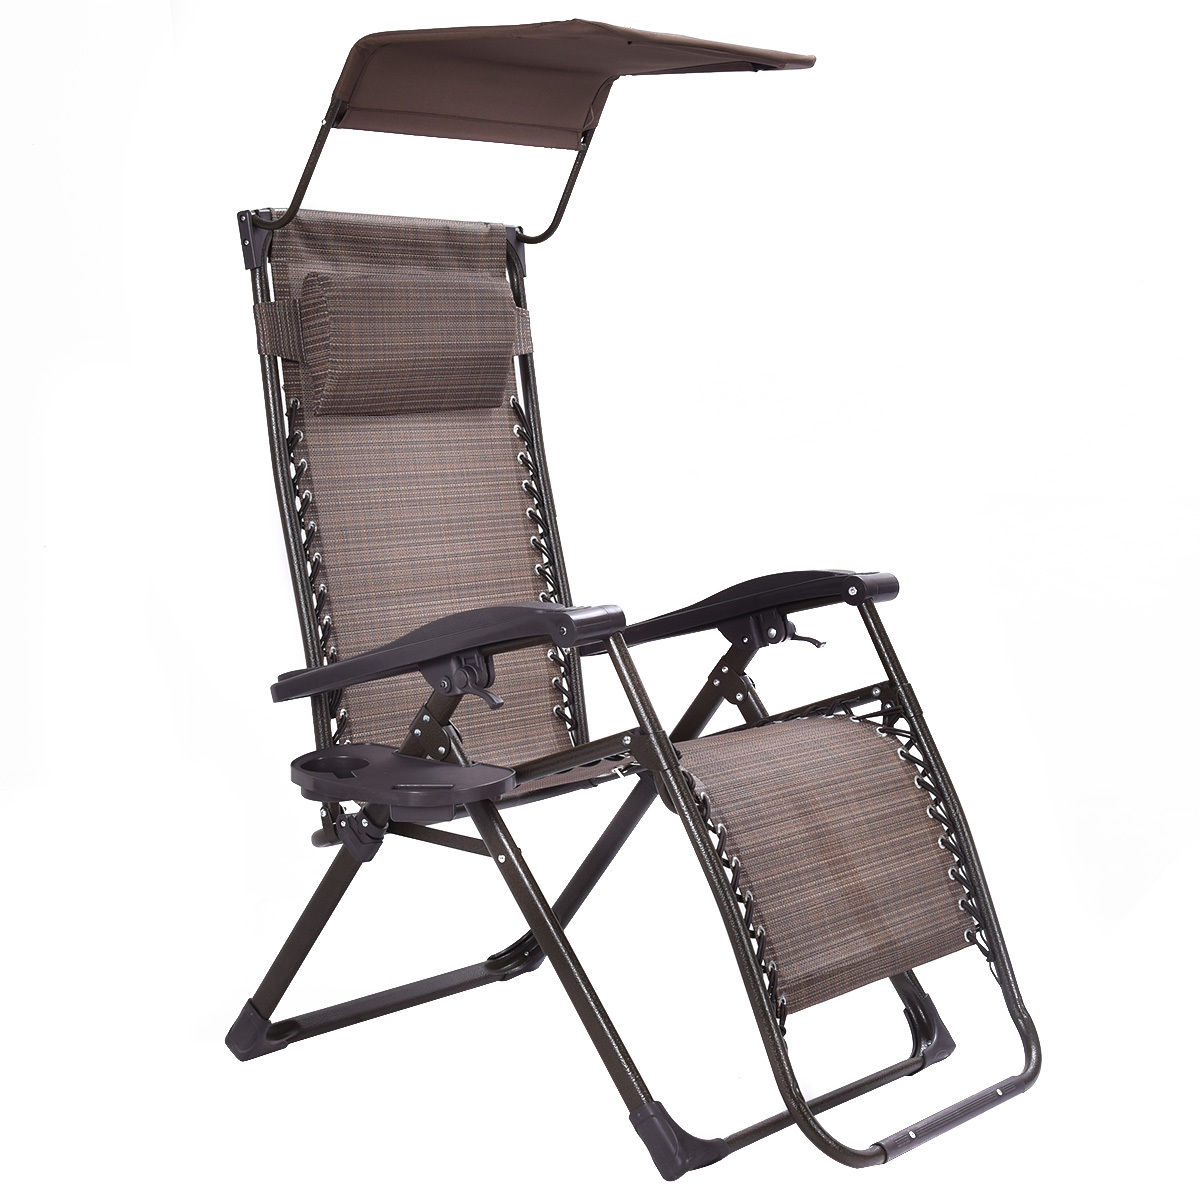 Giantex Foldable Zero Gravity Chair Lounge Patio Garden Outdoor Yard Recliner with Sunshade +Tray Beach Chairs OP3007